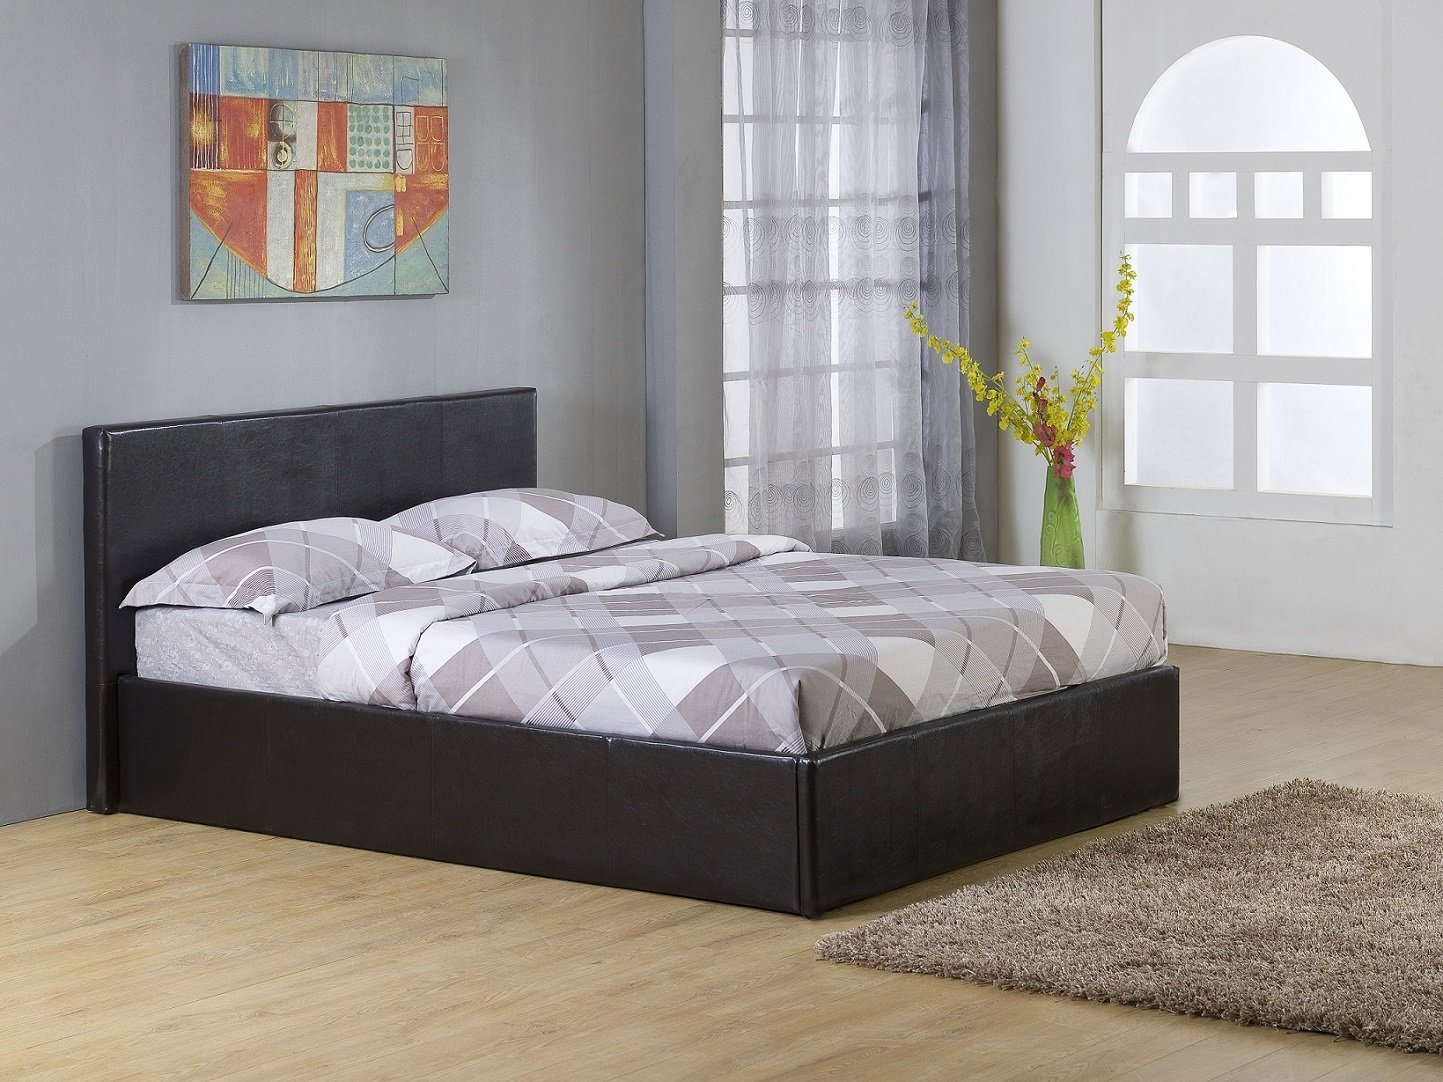 dark brown 4ft small double storage ottoman gas lift up bed frame tigerbeds branded product amazoncouk kitchen home - Double Size Bed Frame